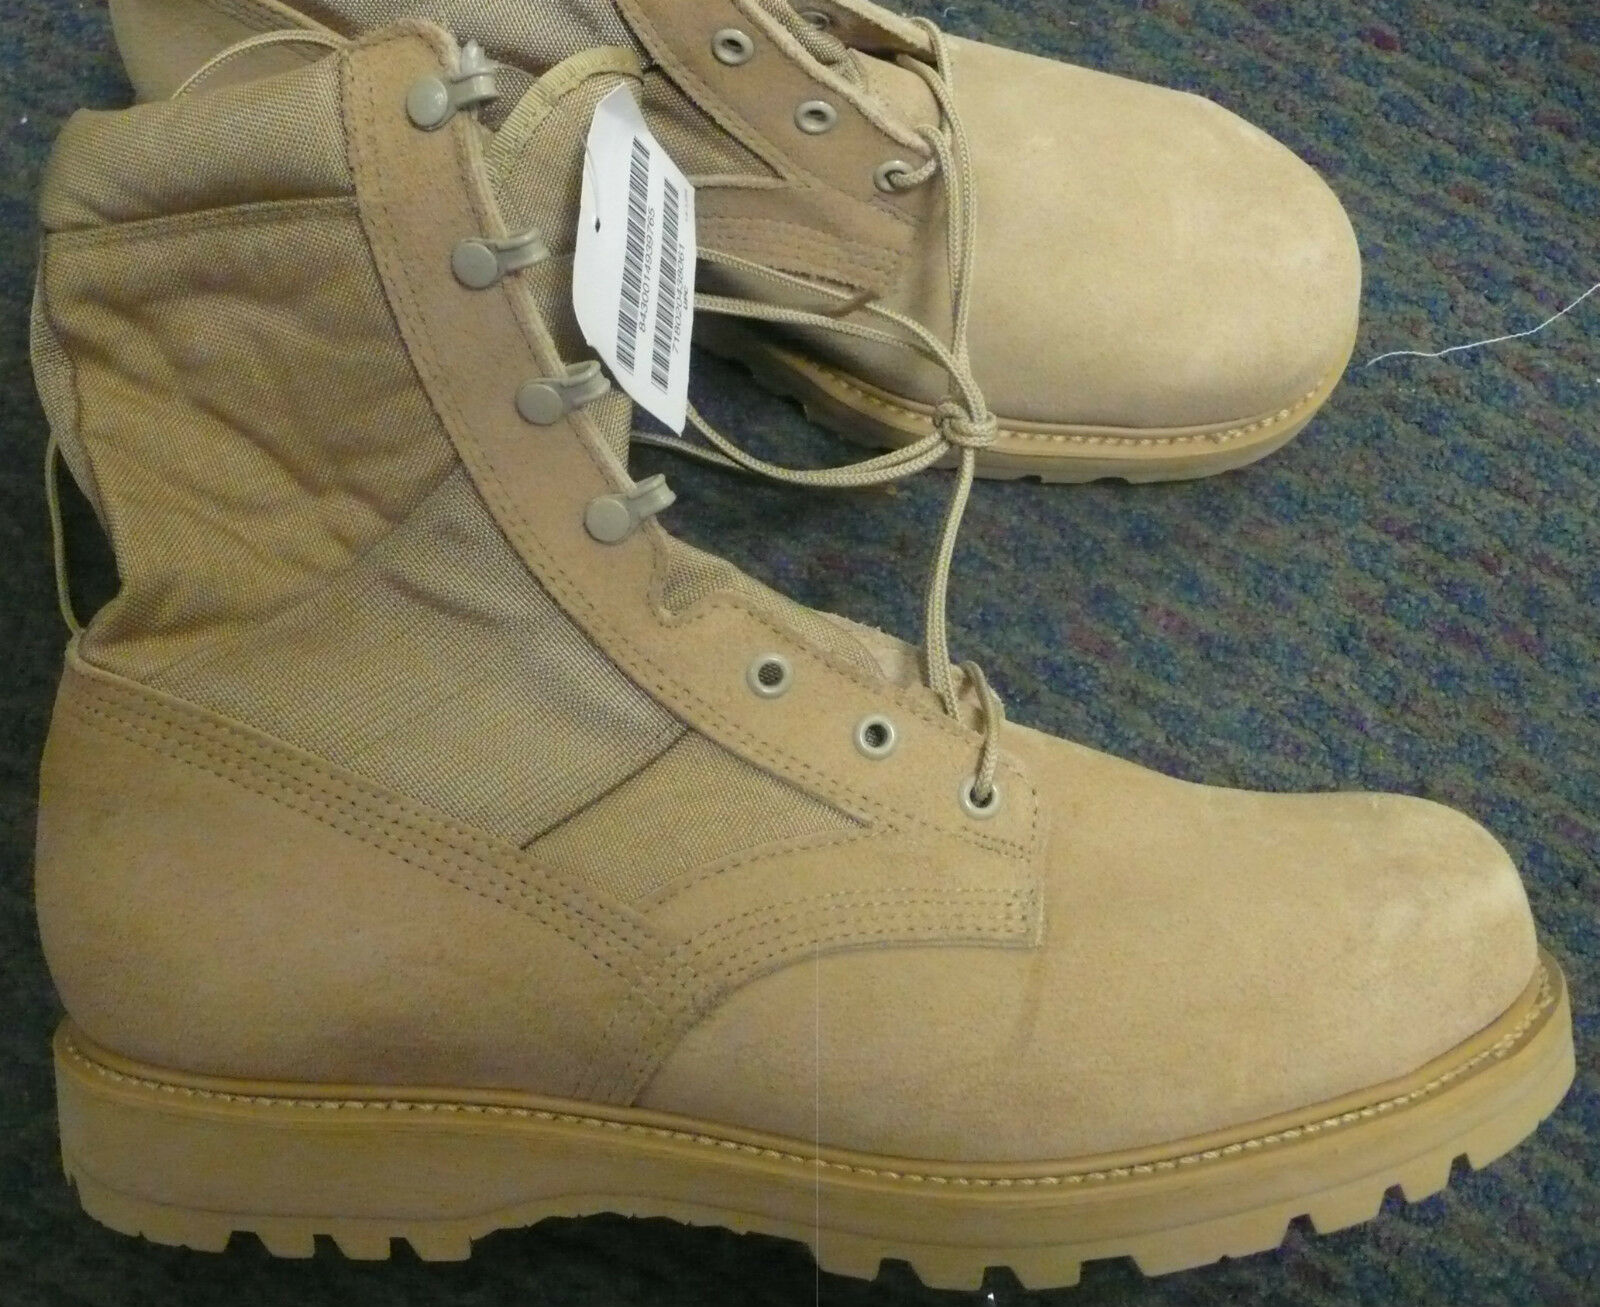 US Army Thorogood Desert Tan Hot Weather piloto Puntera De Acero Botas piloto Weather vuelo 6413c5